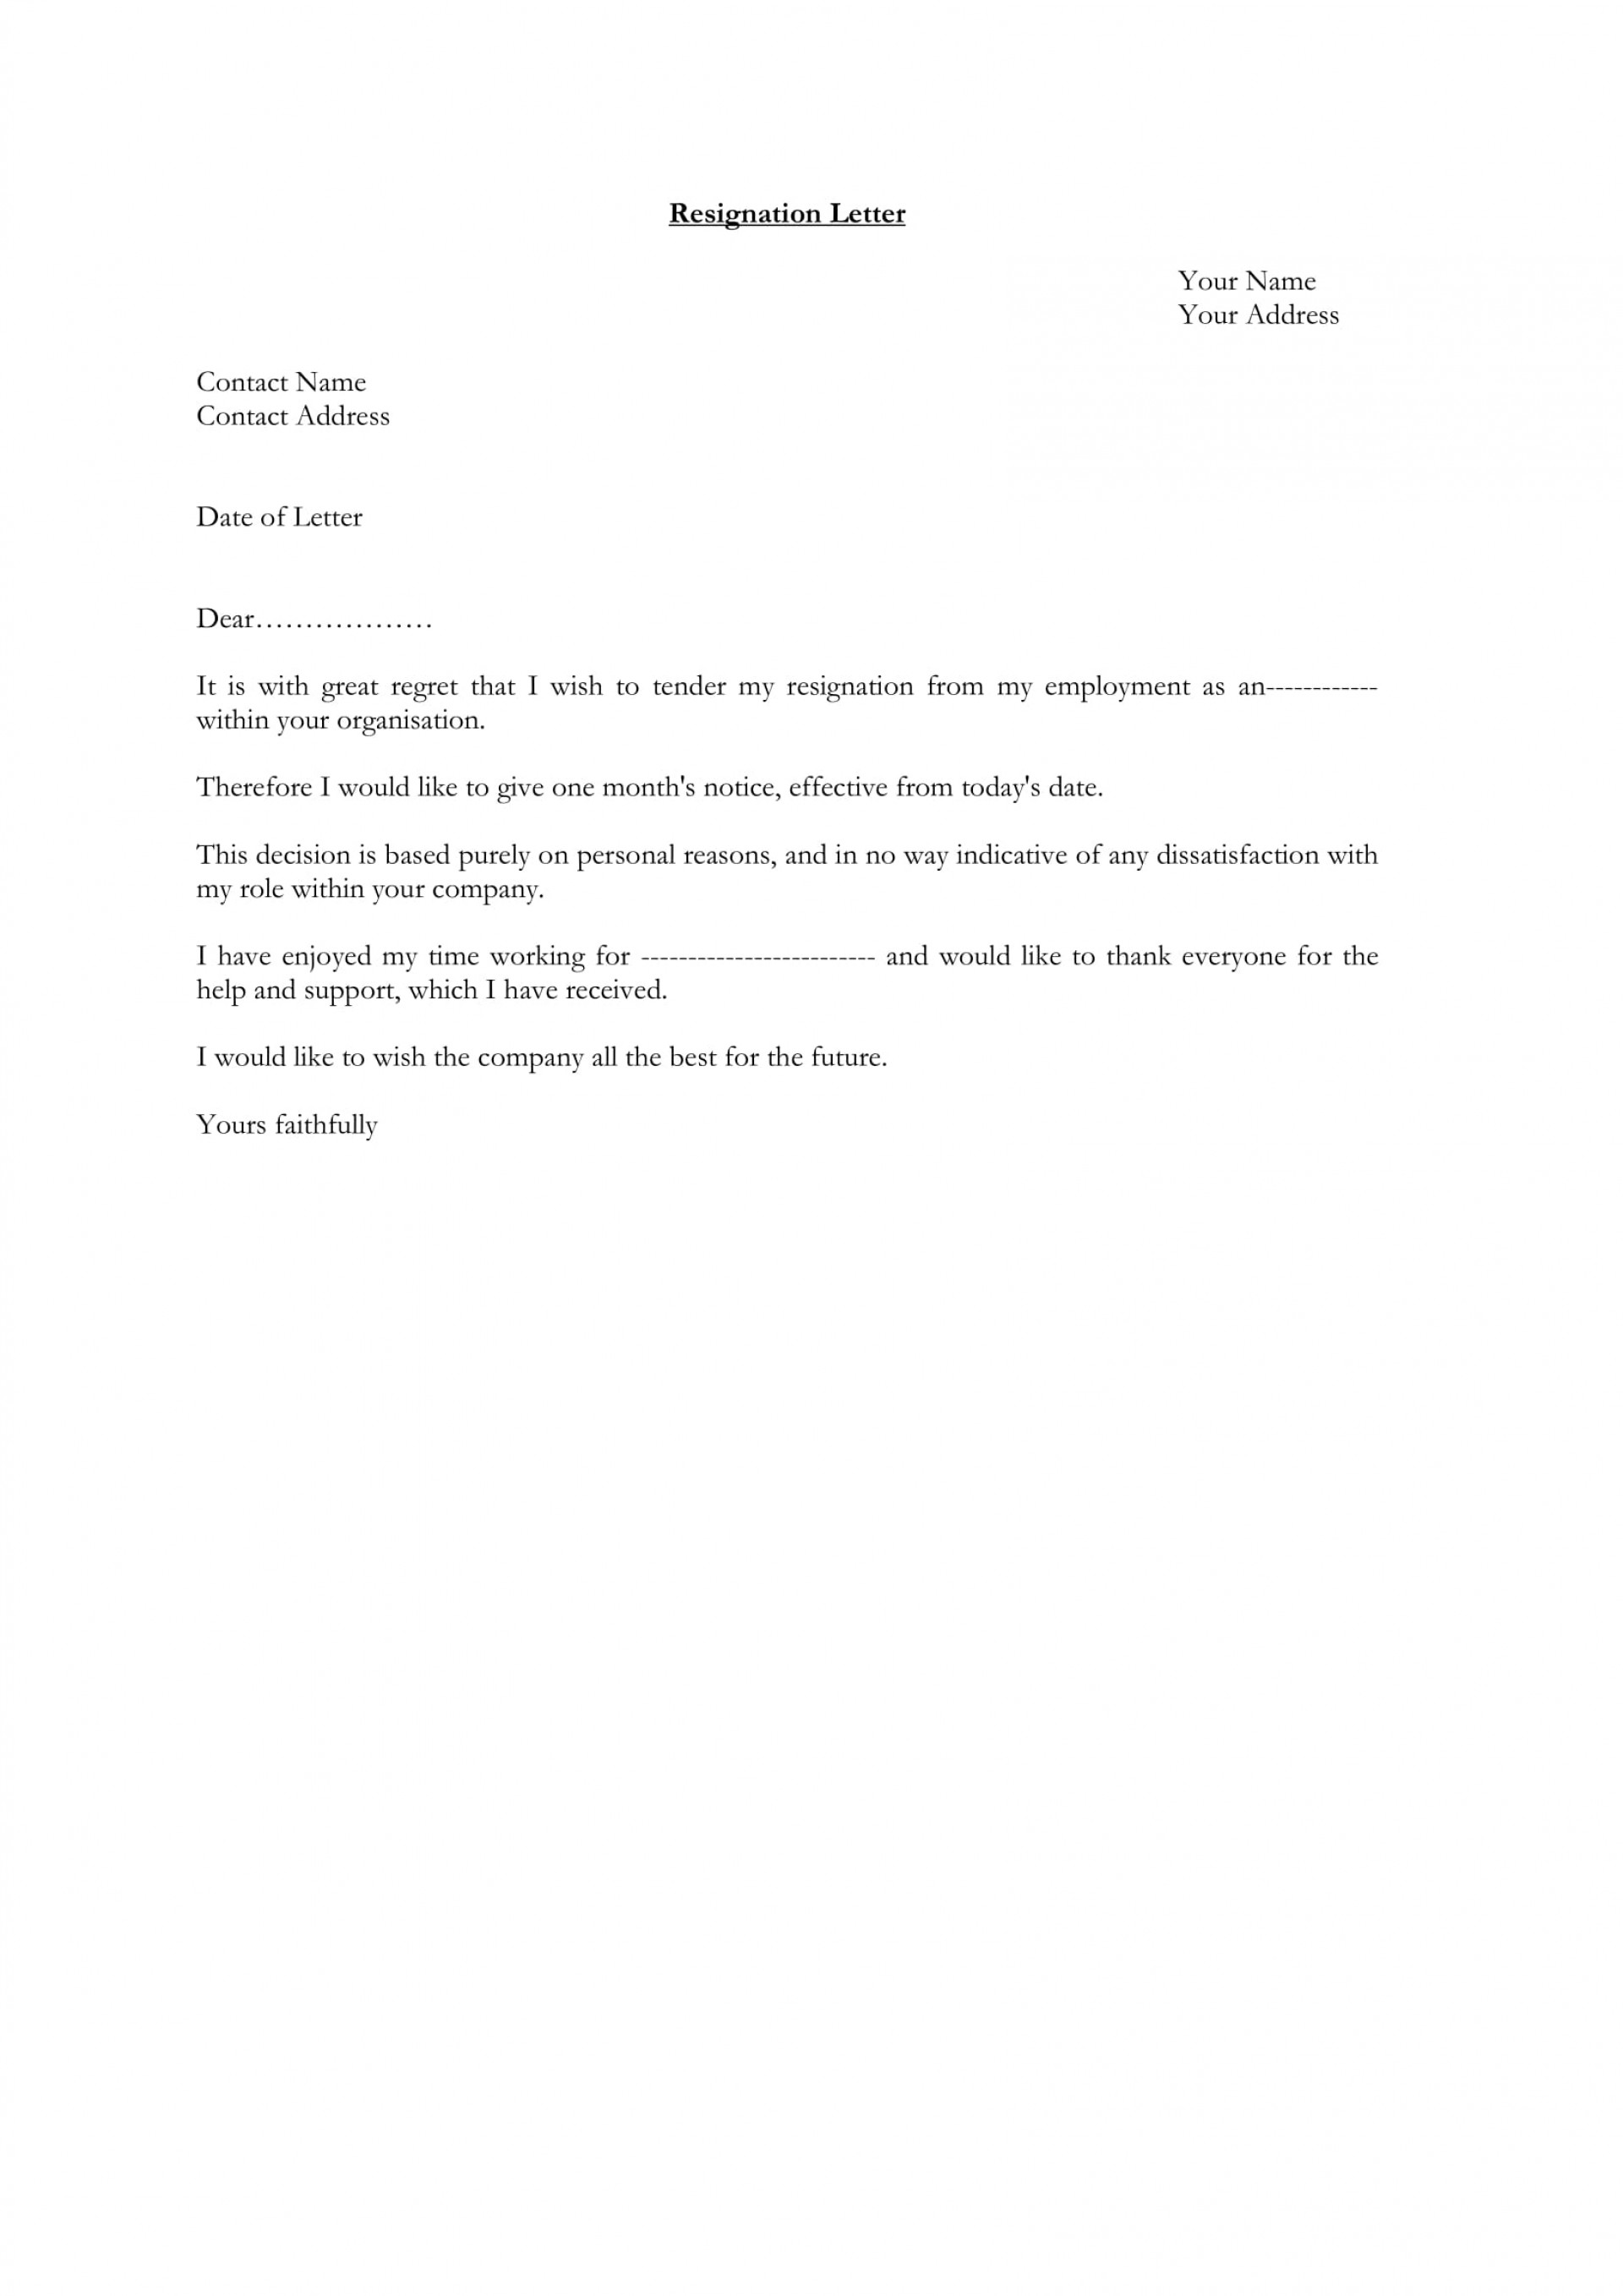 2 Week Notice Letter Template Word from www.addictionary.org